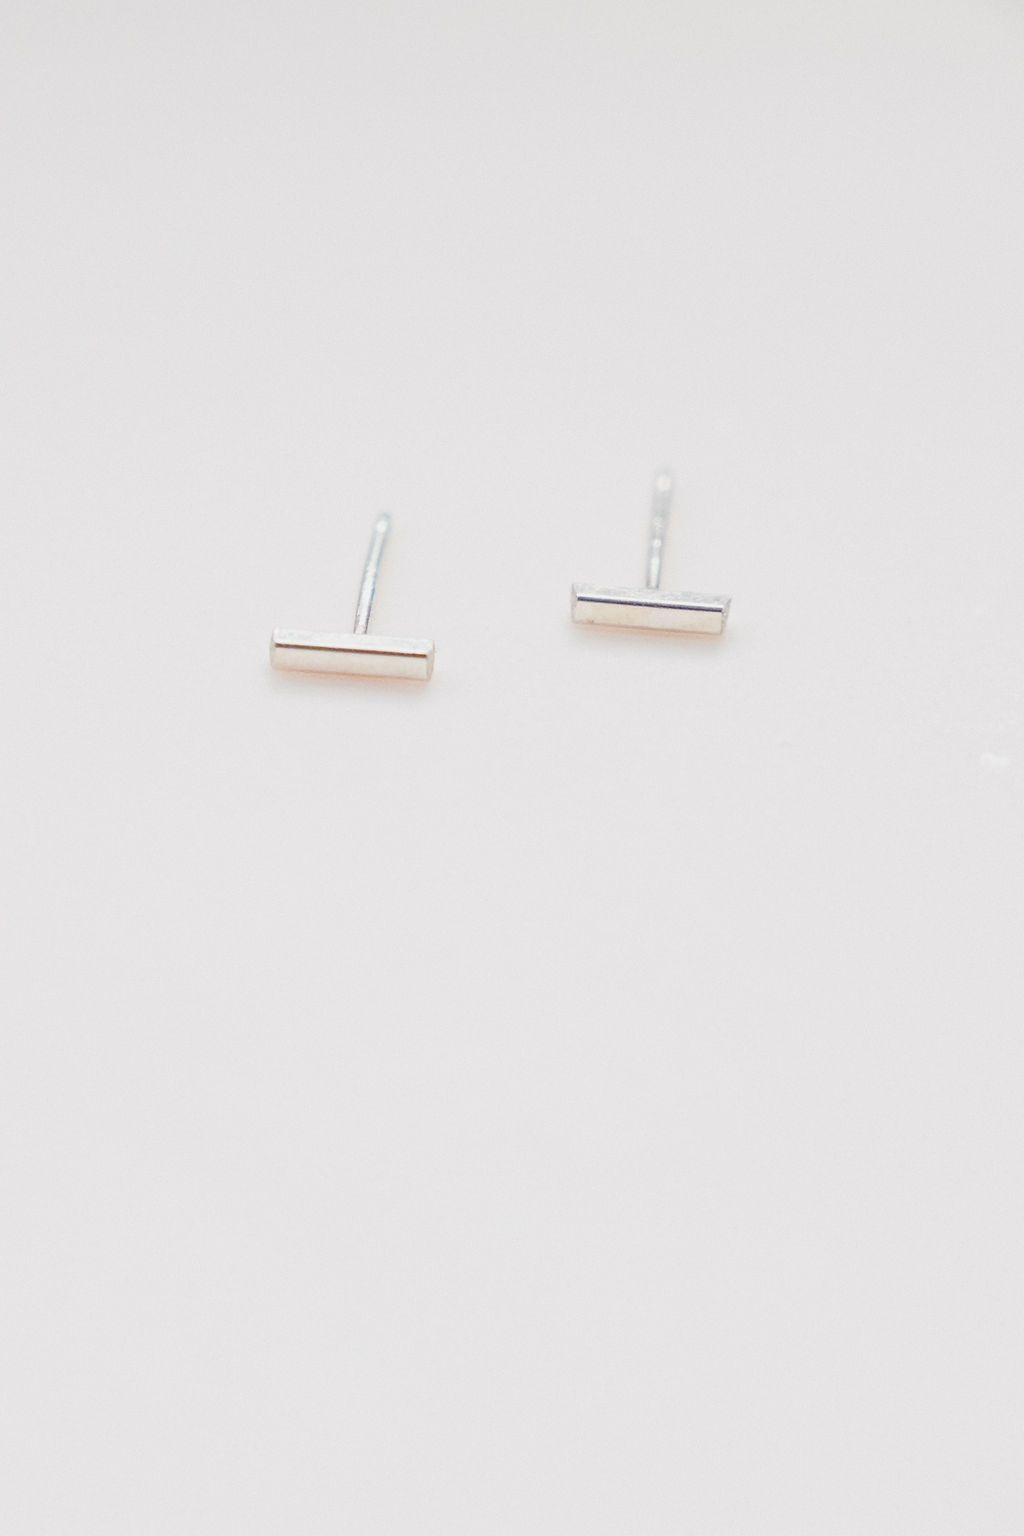 Mini Stud Earrings - Short Bar Silver